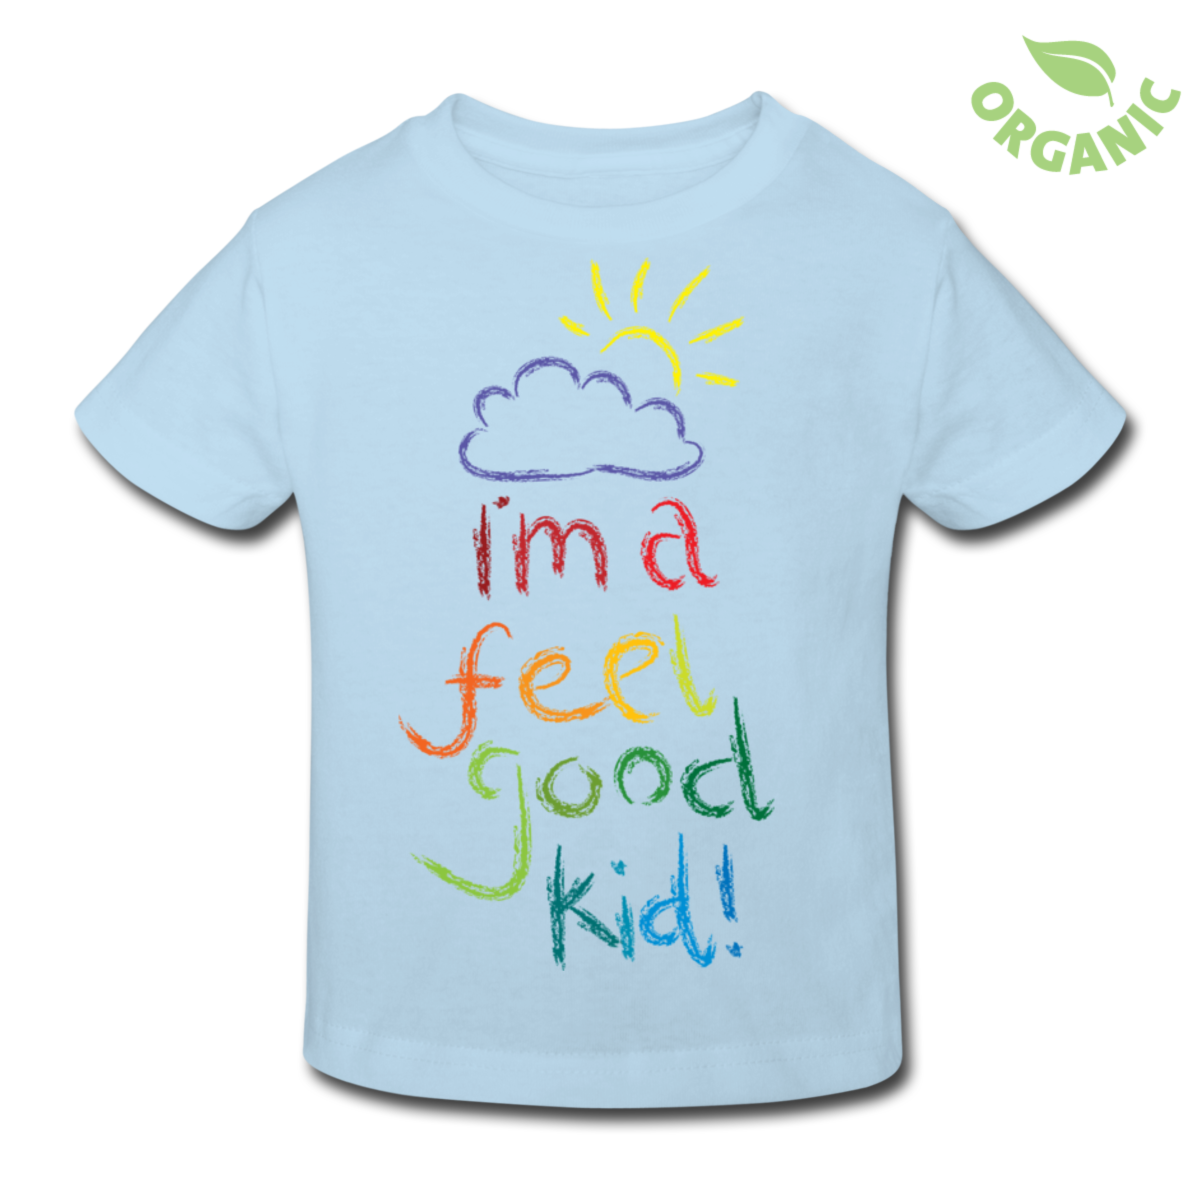 kids tshirt designs the winning design will be